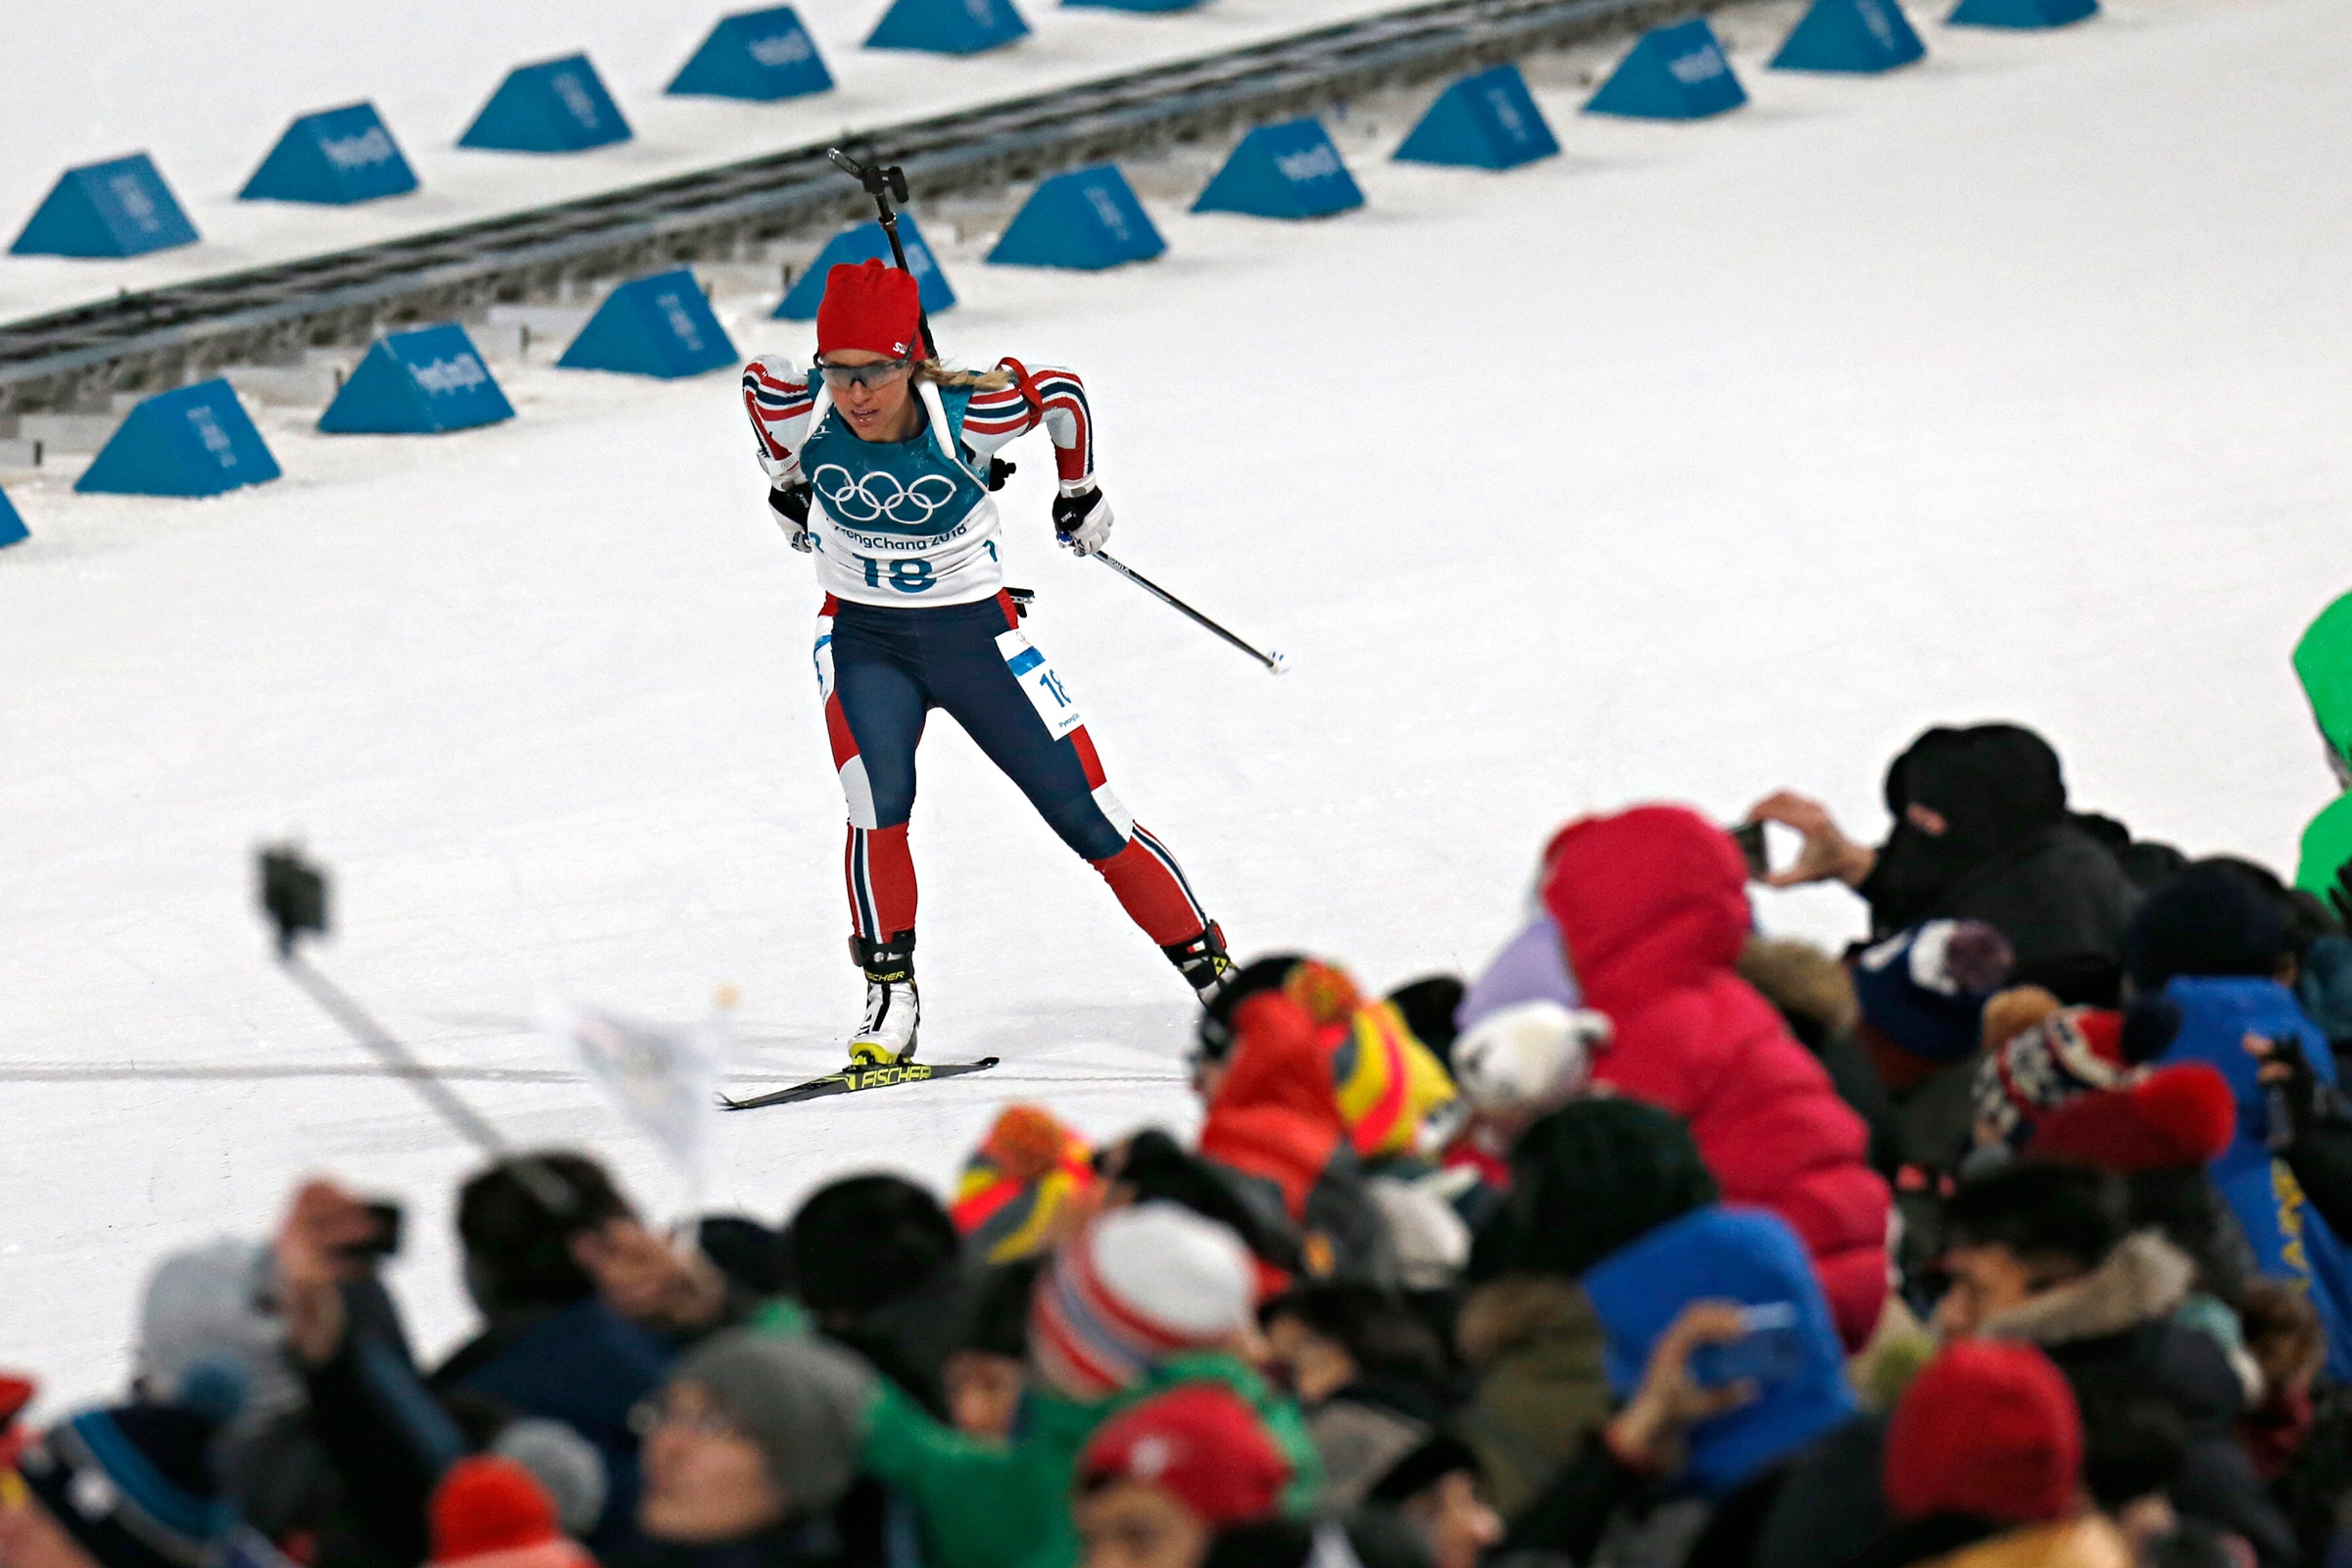 Biathlon - Ladies' 12,5km Mass Start